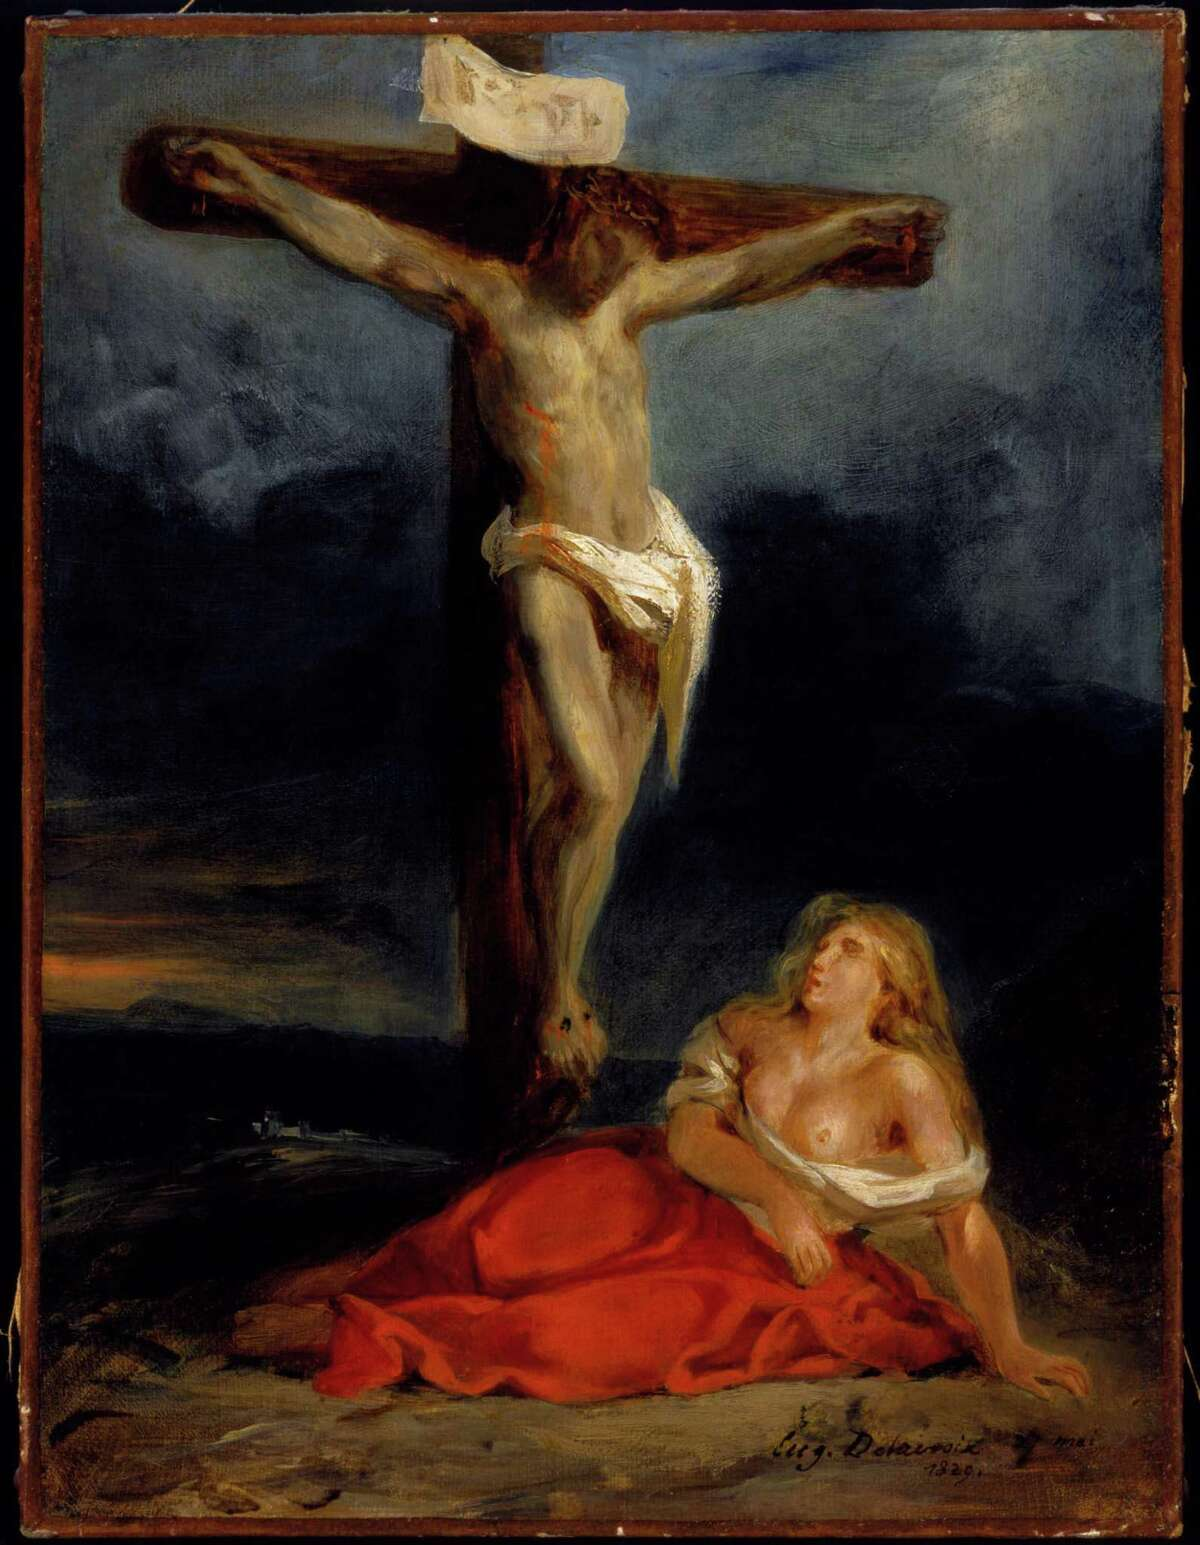 """""""Saint Mary Magdalene at the Foot of the Cross,"""" from 1829, is among the paintings by Eugène Delacroix that belong to the Museum of Fine Art, Houston."""